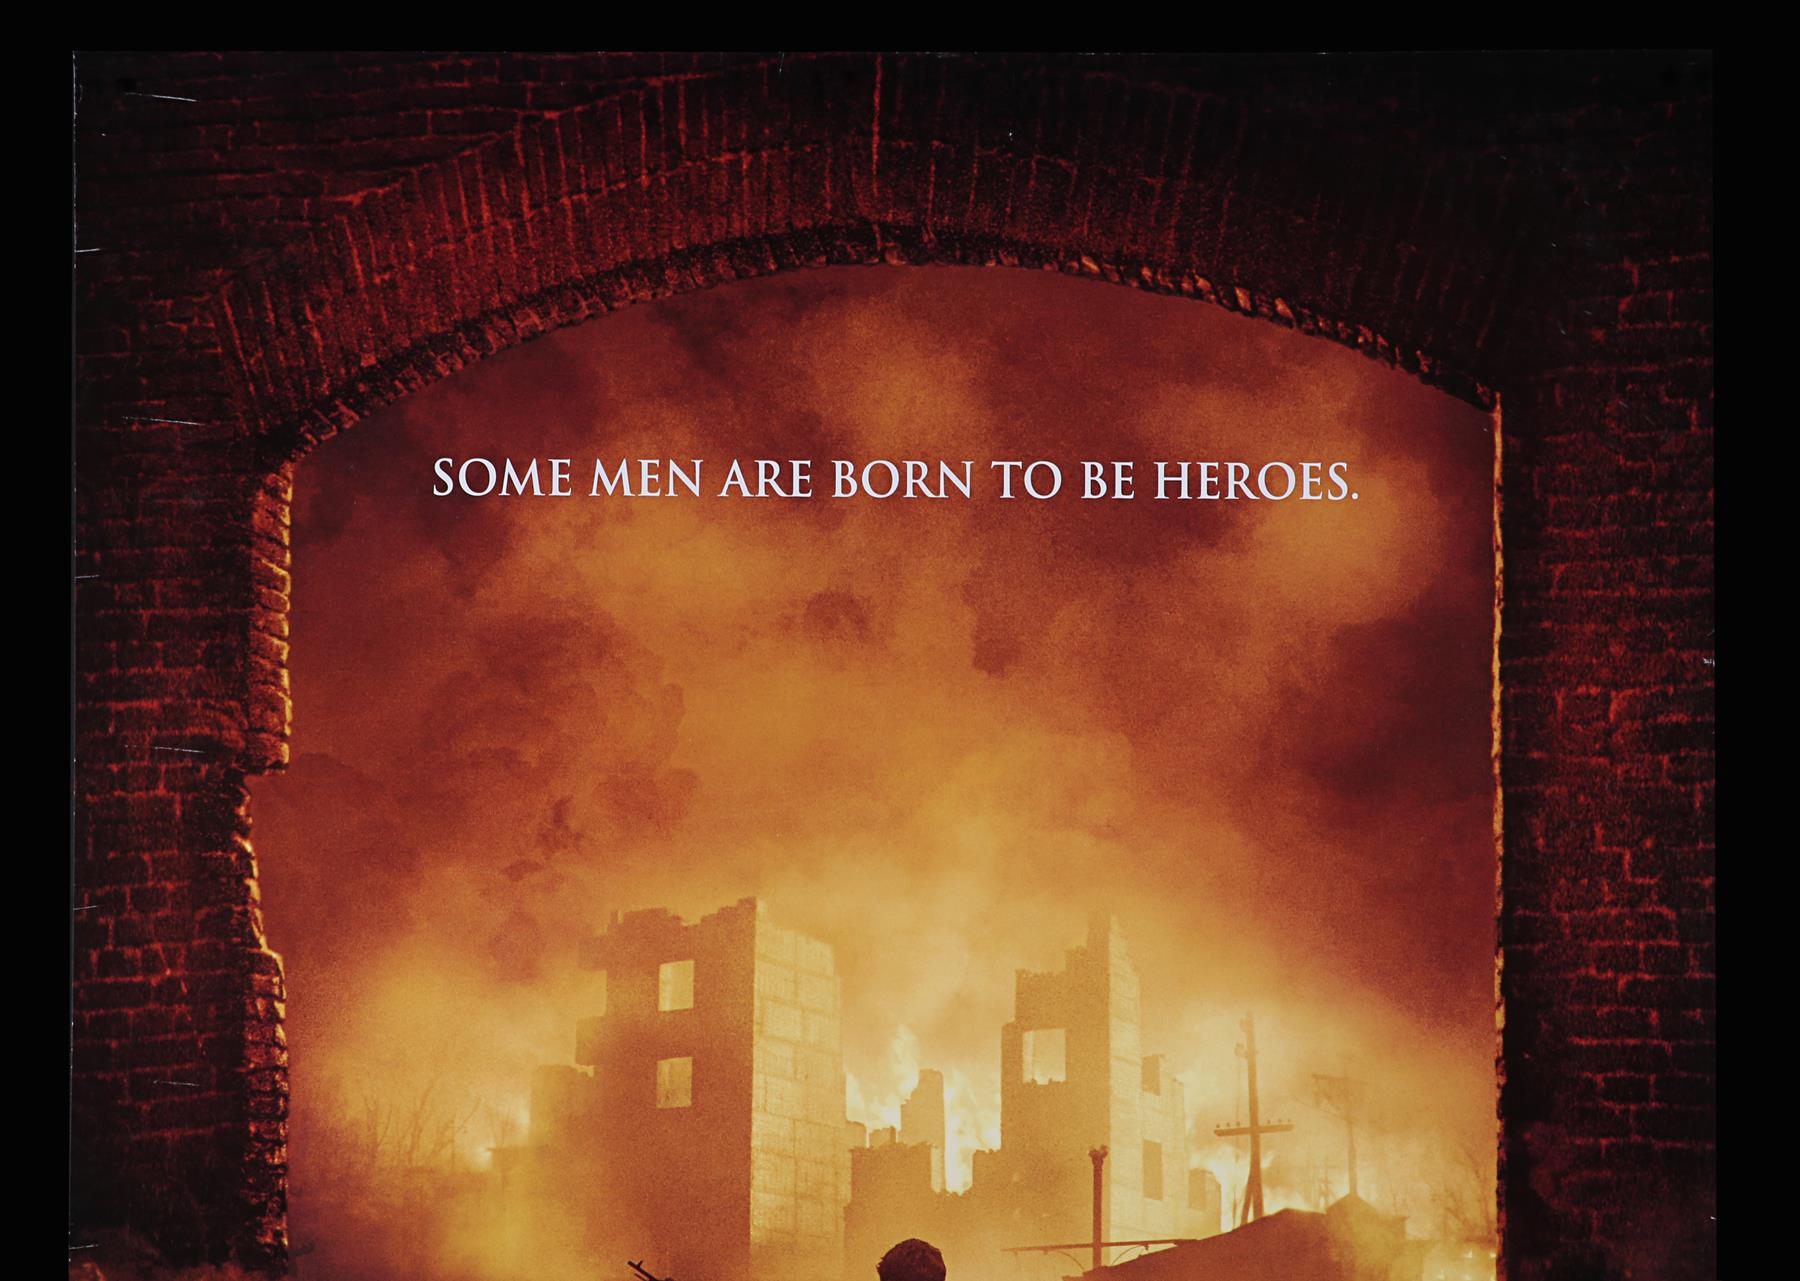 ENEMY AT THE GATES (2001) - US One-Sheet, 2001, Autographed by Jude Law and Joseph Fiennes - Image 2 of 6